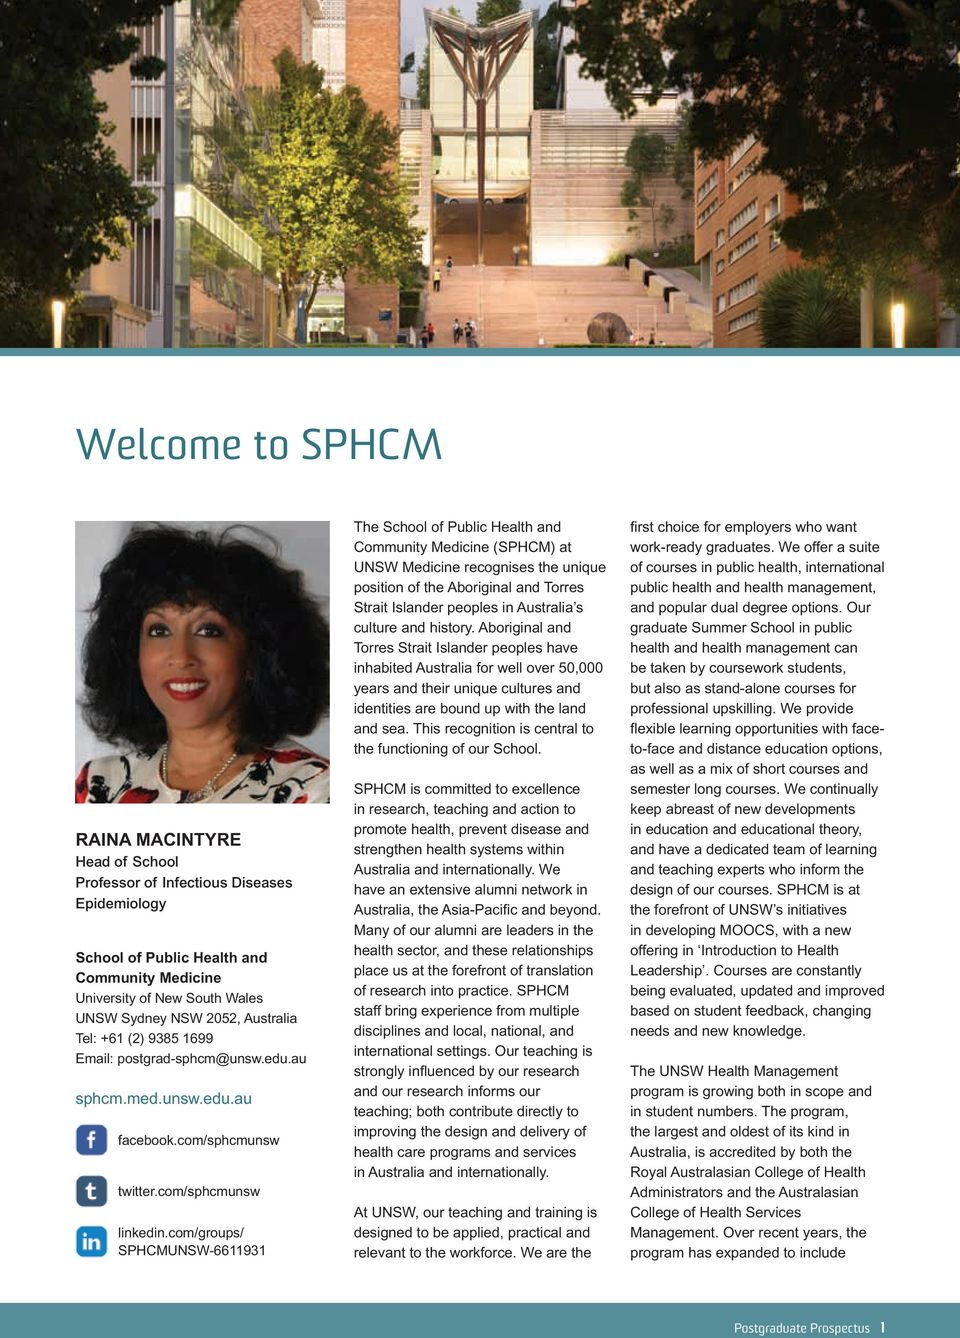 com/groups/ SPHCMUNSW-6611931 The School of Public Health and Community Medicine (SPHCM) at UNSW Medicine recognises the unique position of the Aboriginal and Torres Strait Islander peoples in